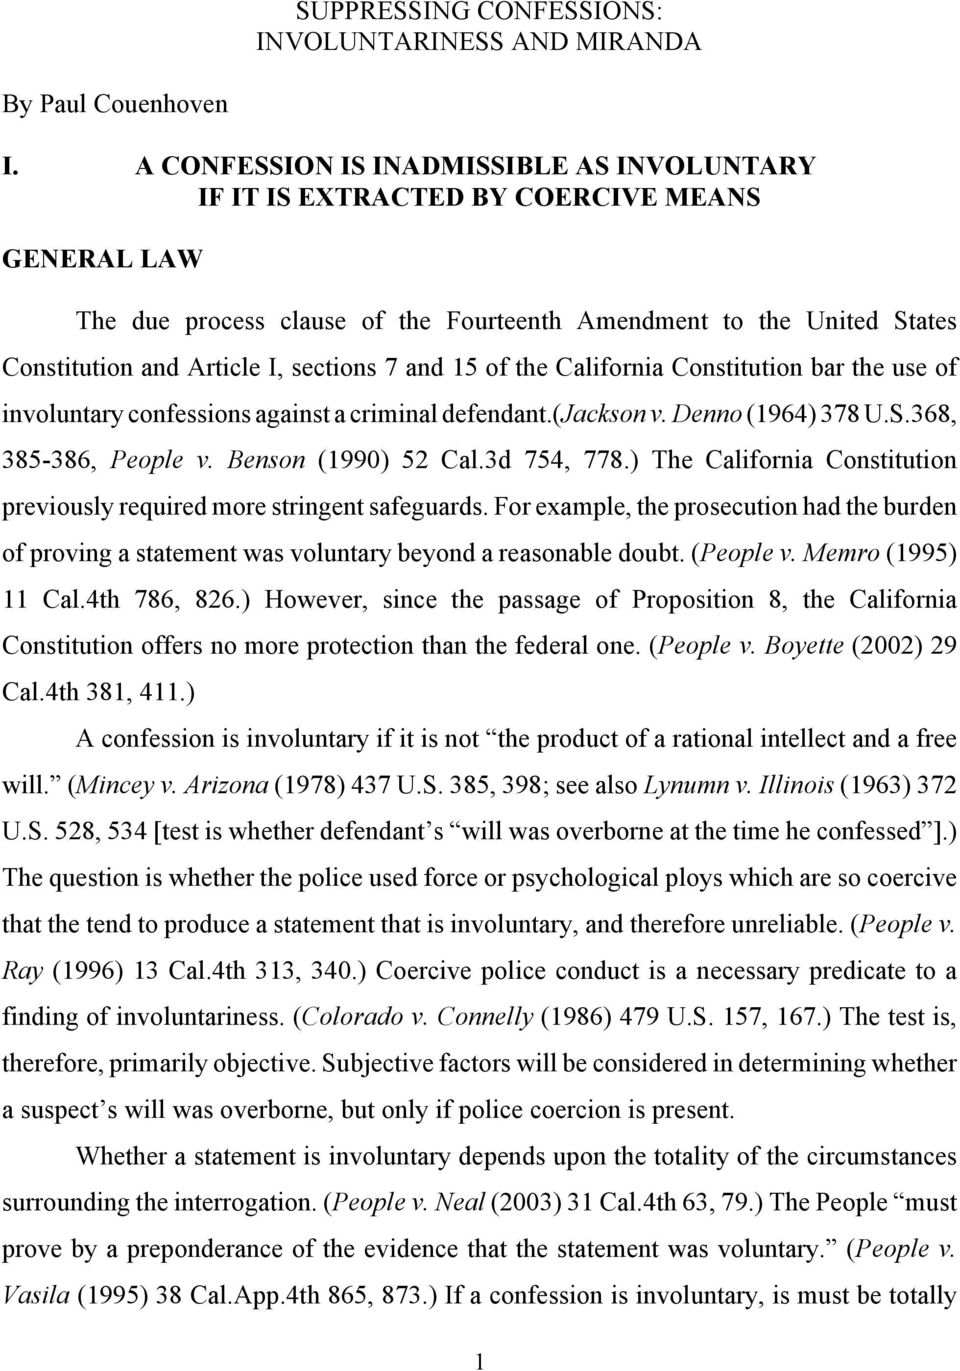 sections 7 and 15 of the California Constitution bar the use of involuntary confessions against a criminal defendant.(jackson v. Denno (1964) 378 U.S.368, 385-386, People v. Benson (1990) 52 Cal.